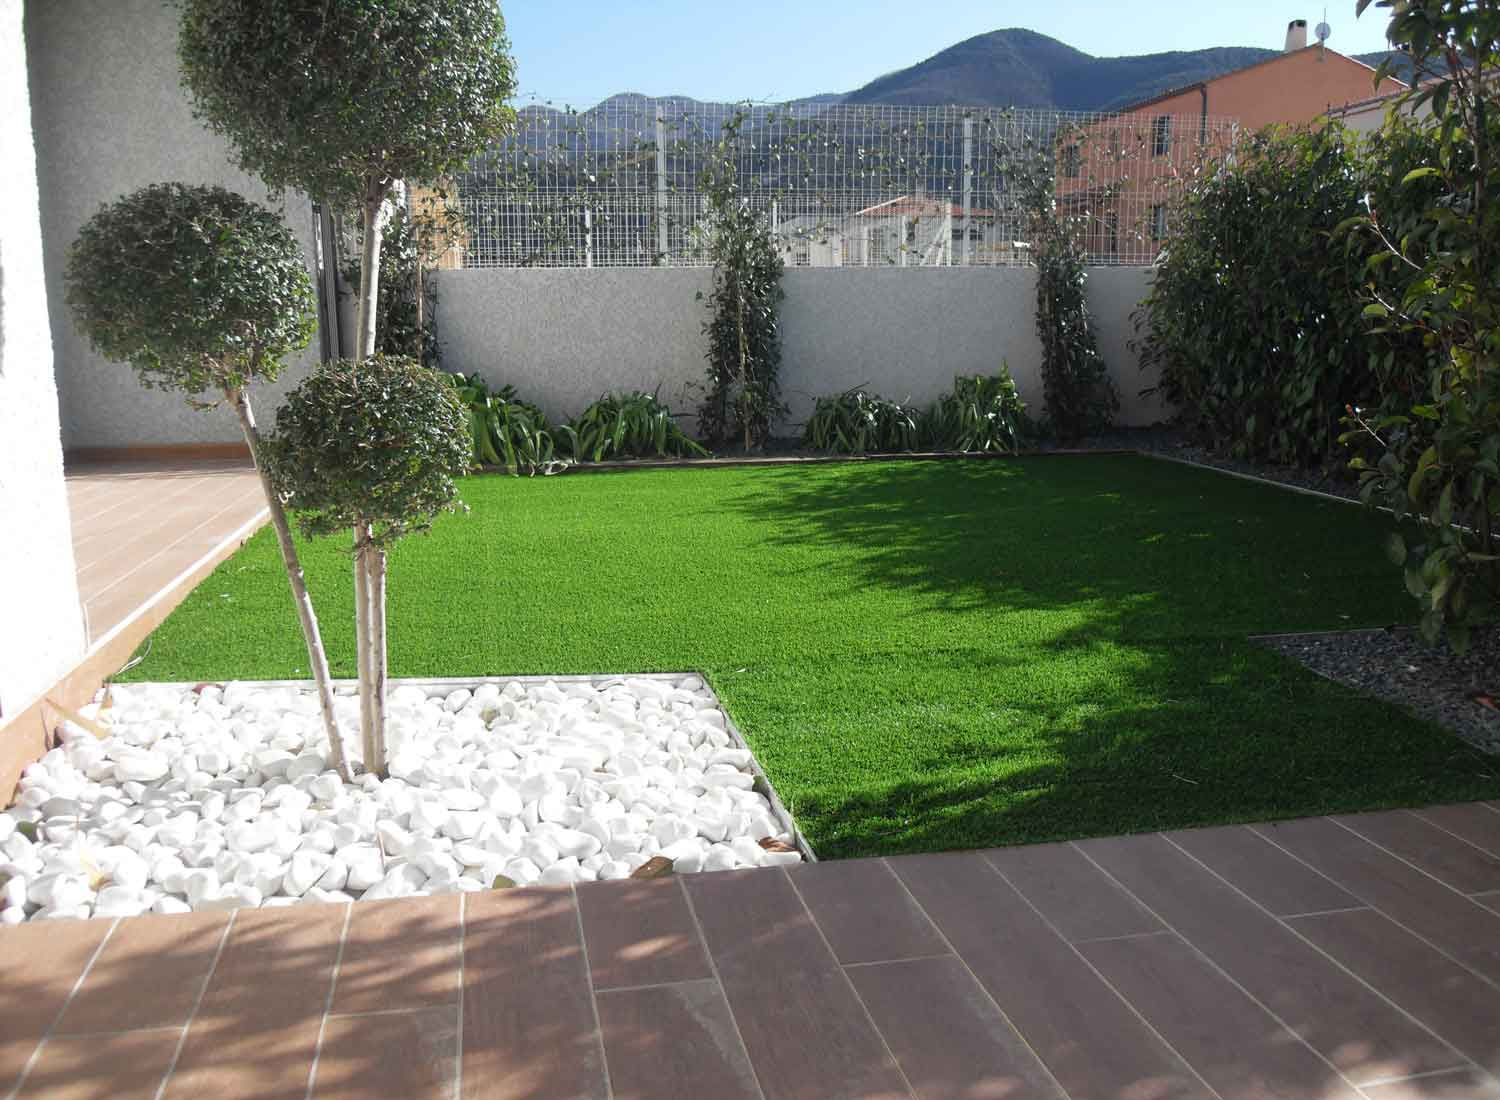 Gazon synthetique pierres et arbres sur perpignan for Amenagement jardin gazon synthetique